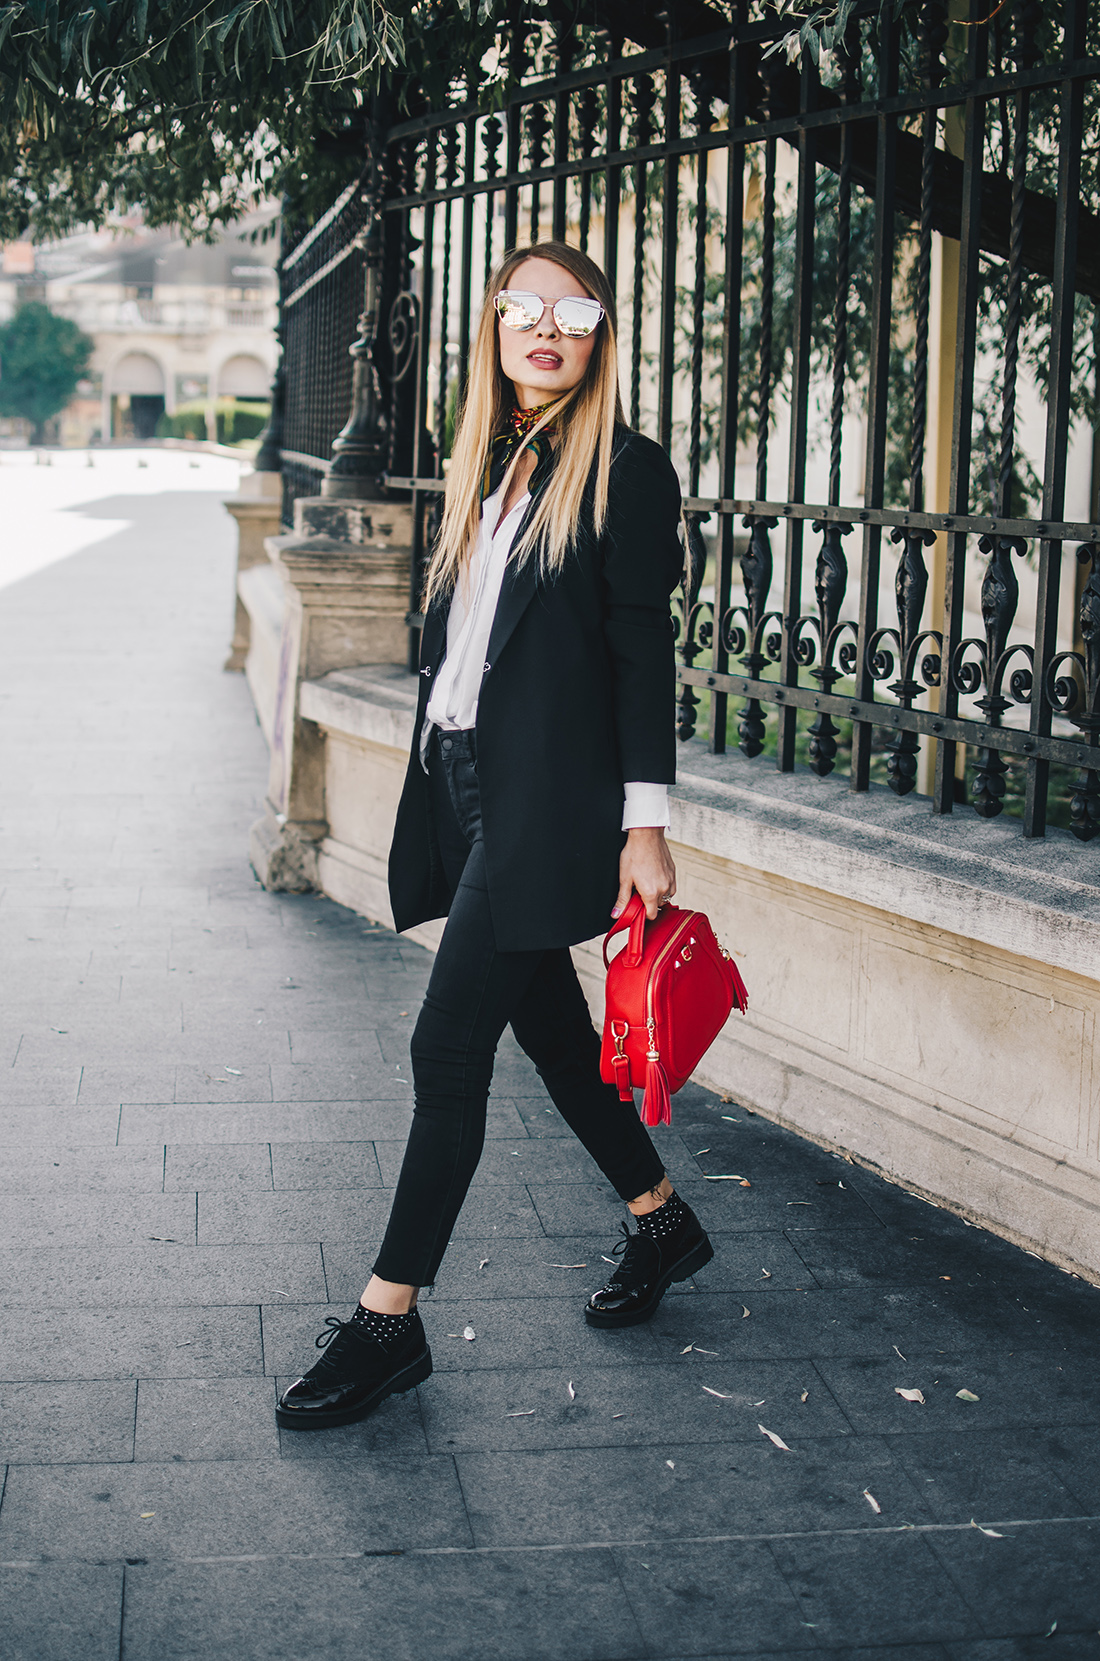 black-and-white-outfit-zerouv-sunglasses-red-bag-vintage-scarf-4